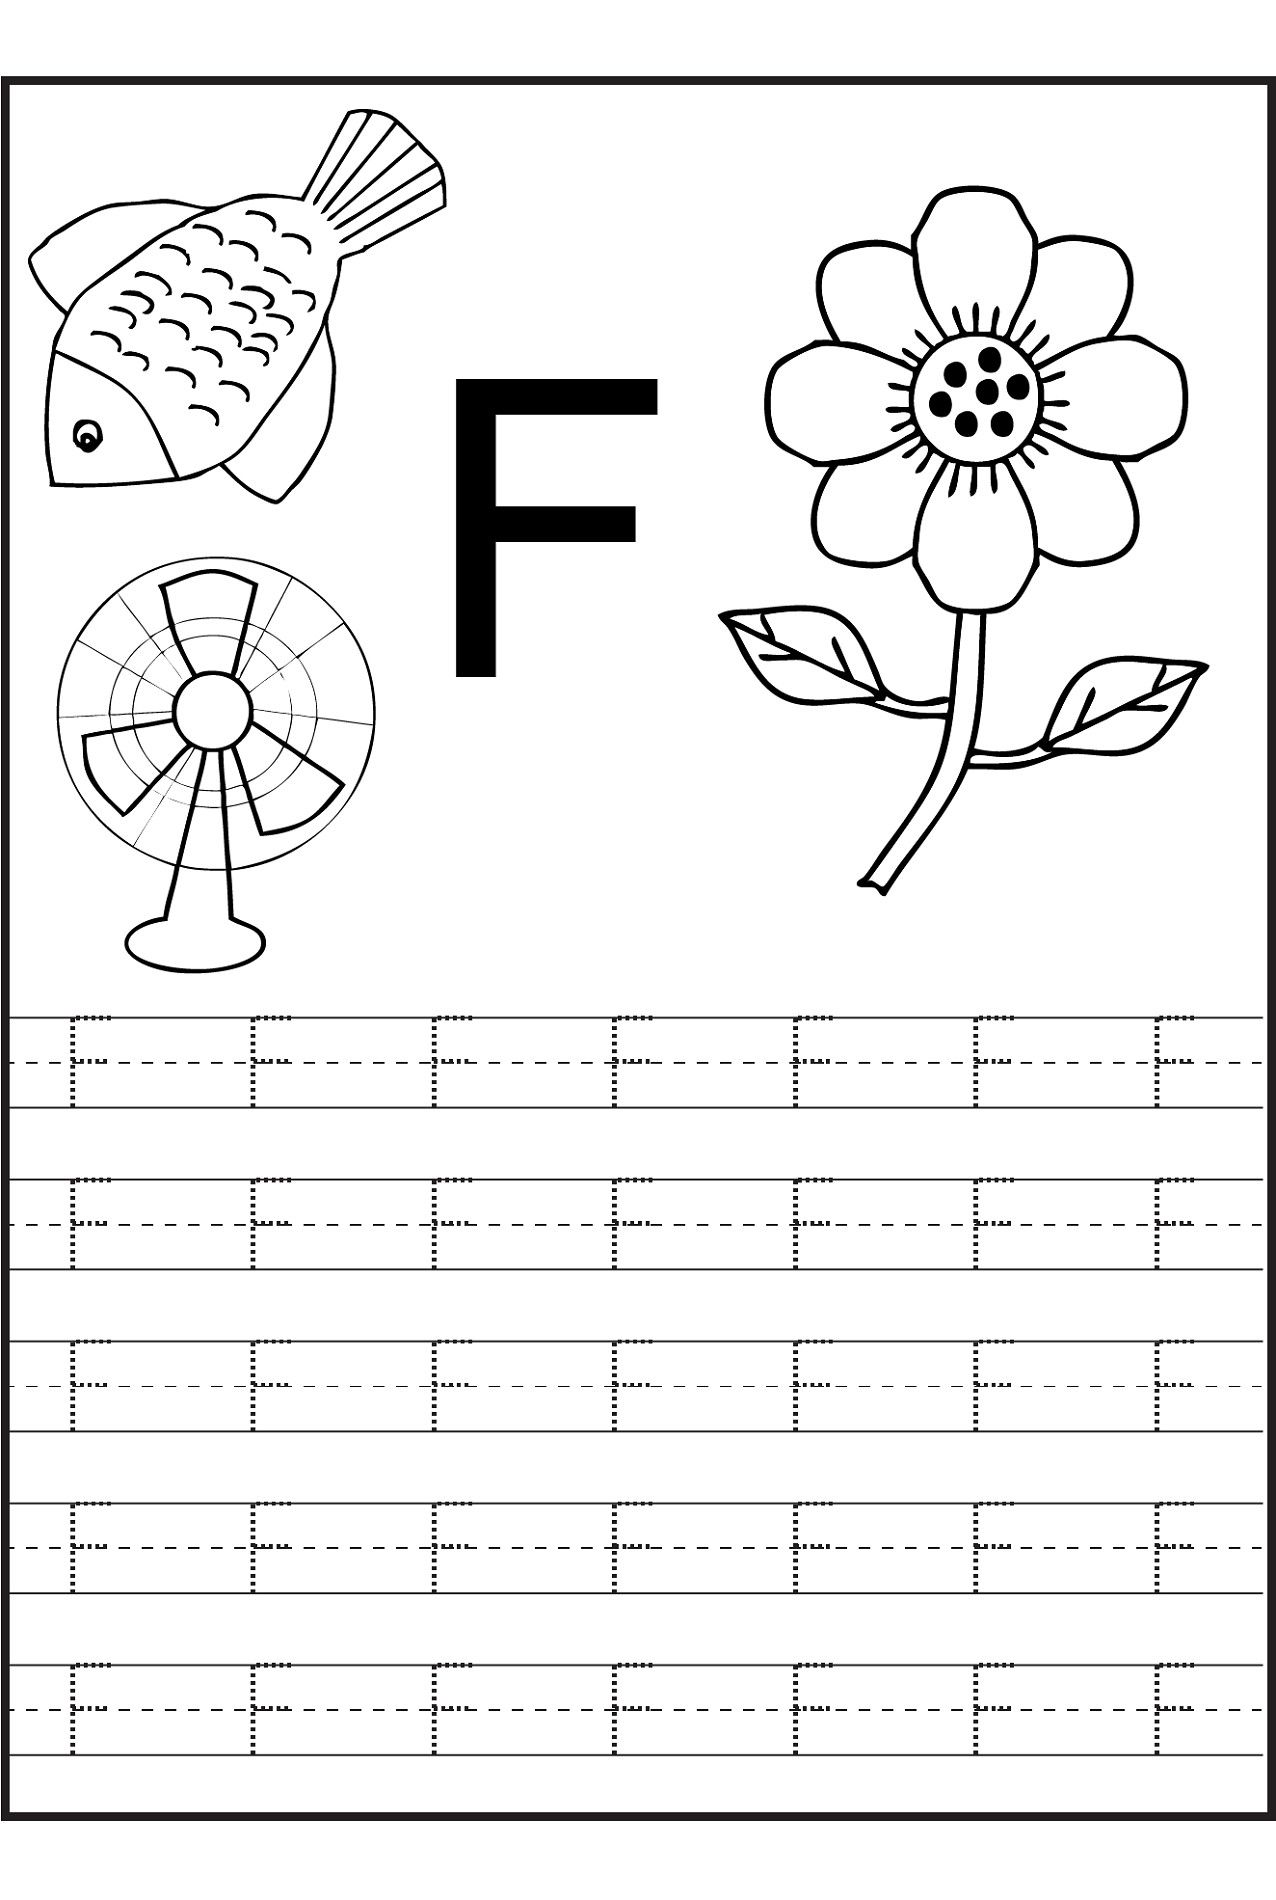 2 Printable Tracing Letter R Worksheets Trace The Letters Worksheets In 2020 Alphabet Writing Worksheets Letter Tracing Worksheets Writing Practice Worksheets